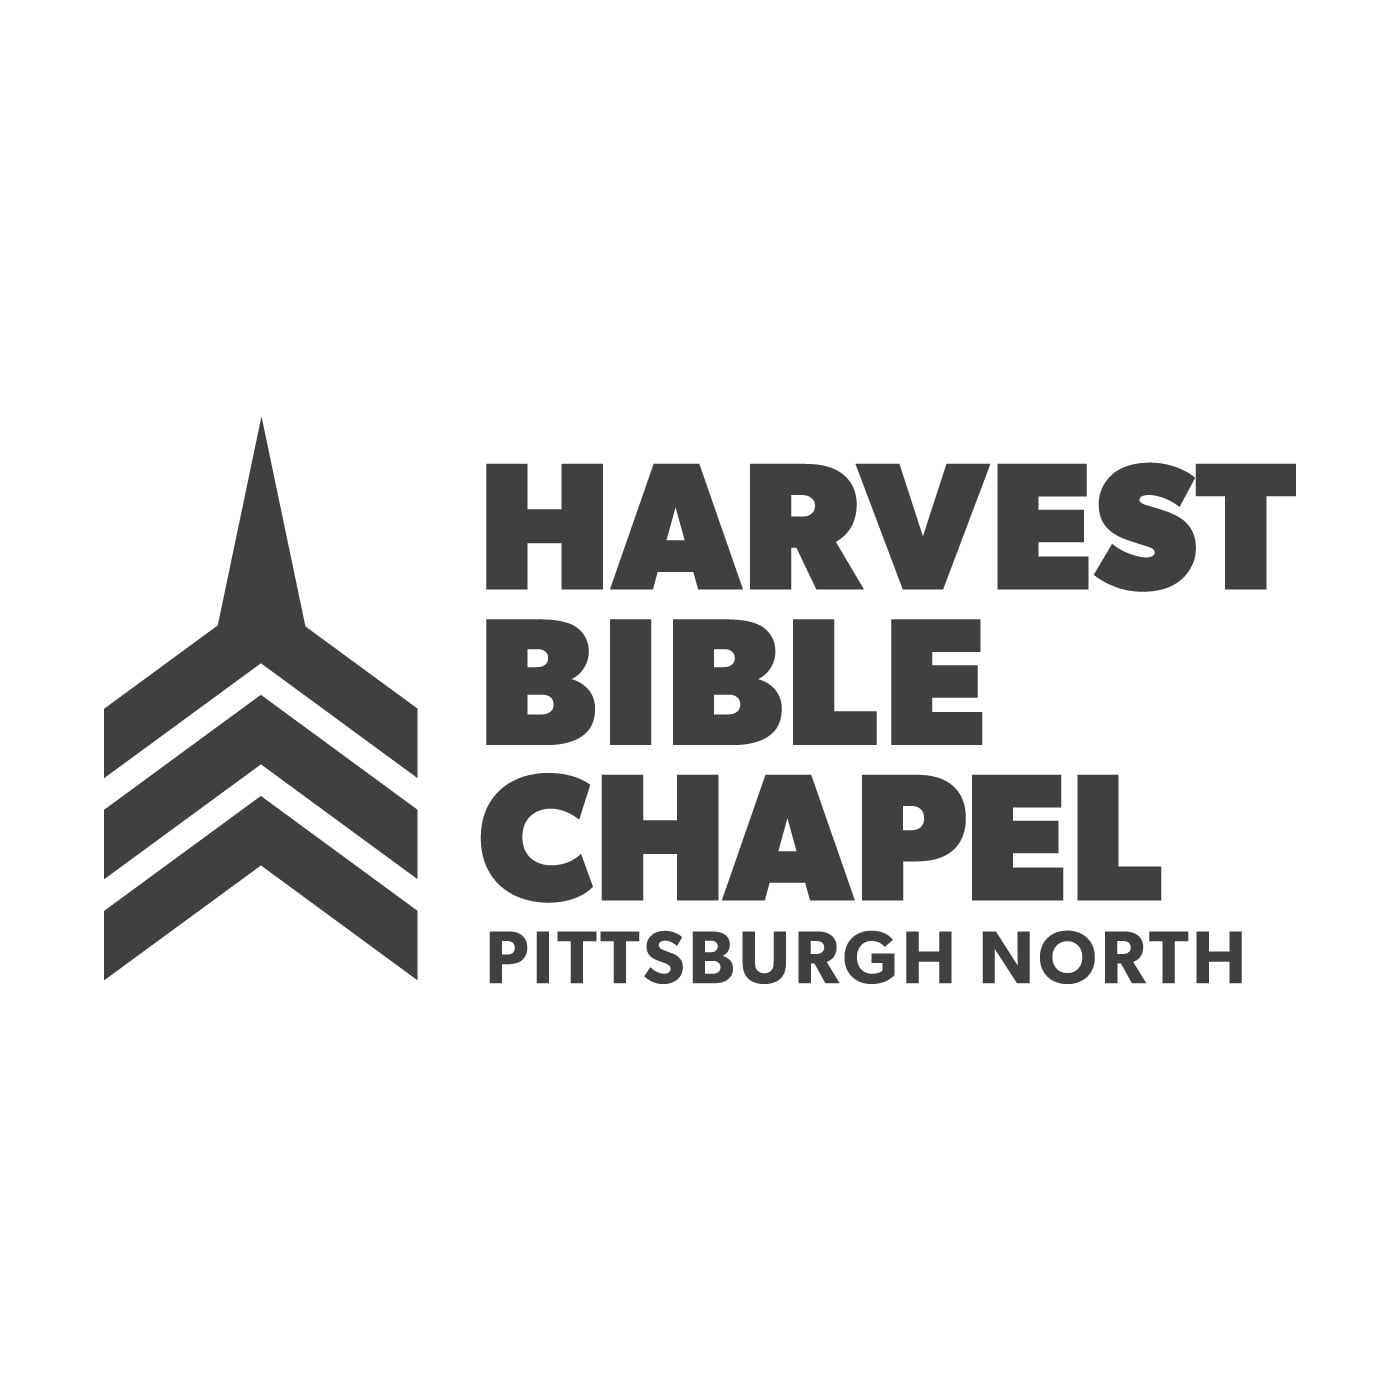 Harvest Bible Chapel Pittsburgh North Sermons - Harvest Bible Chapel Pittsburgh North